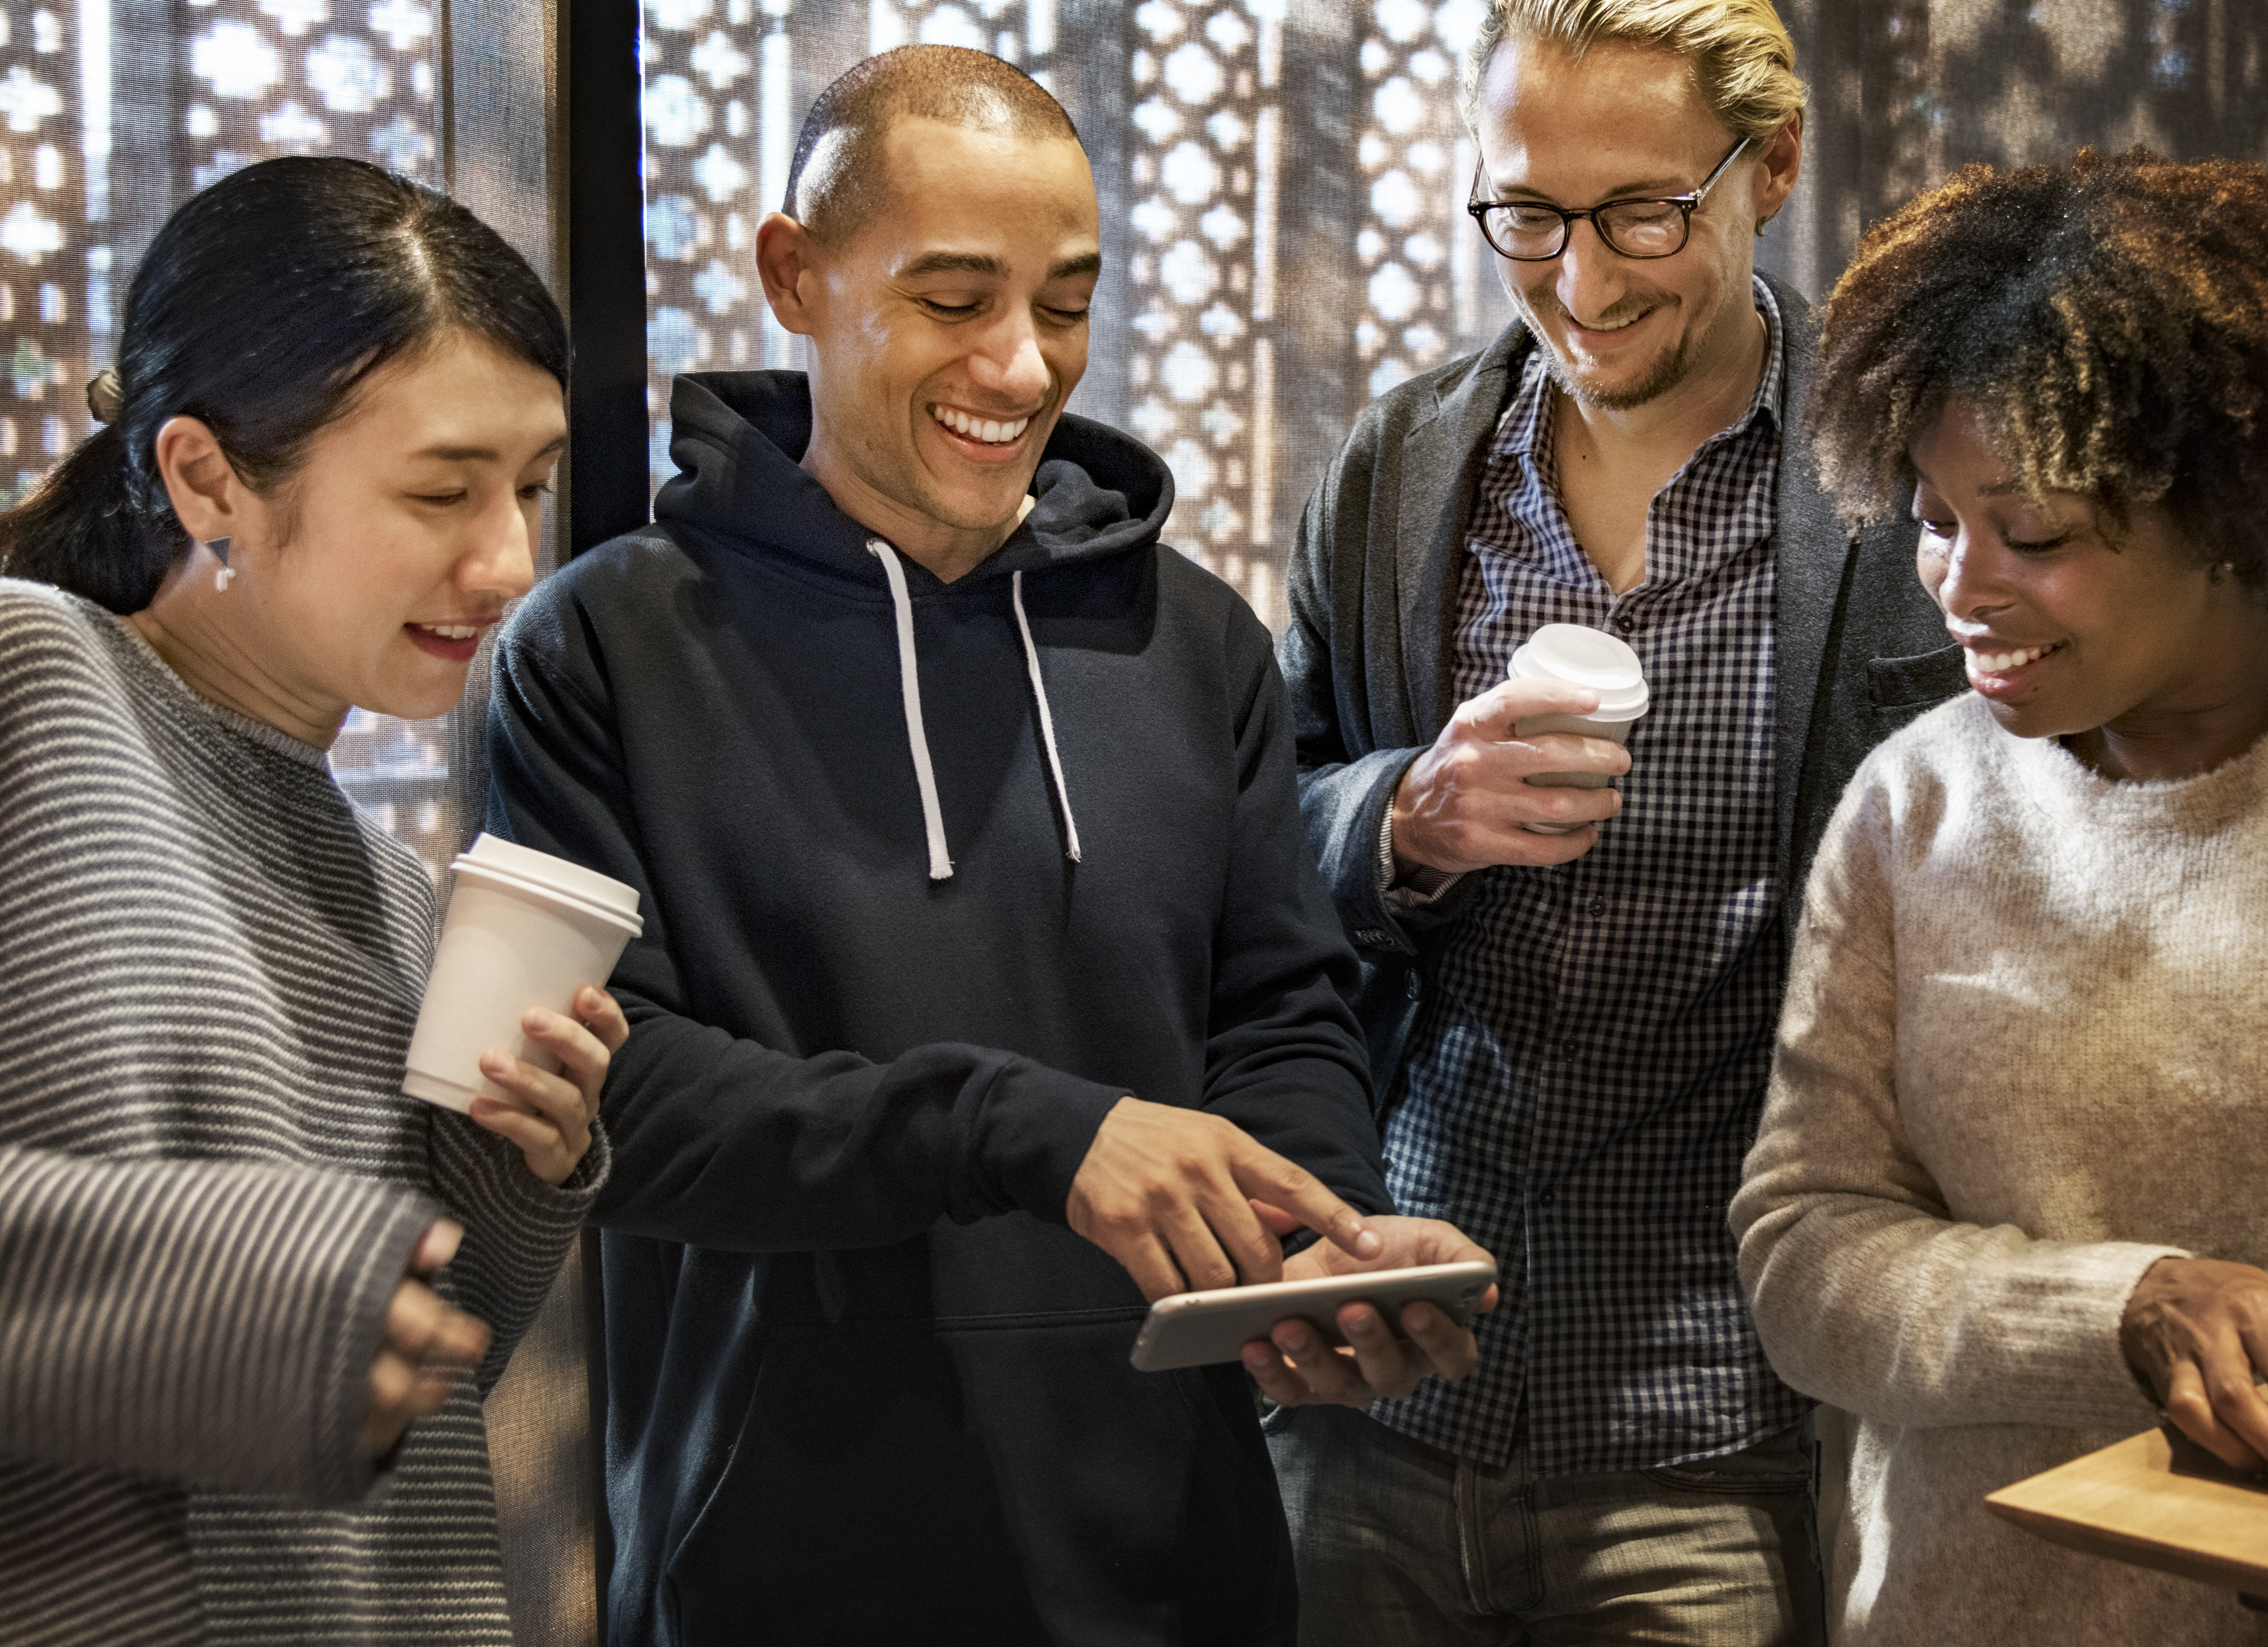 group of people looking at smartphone